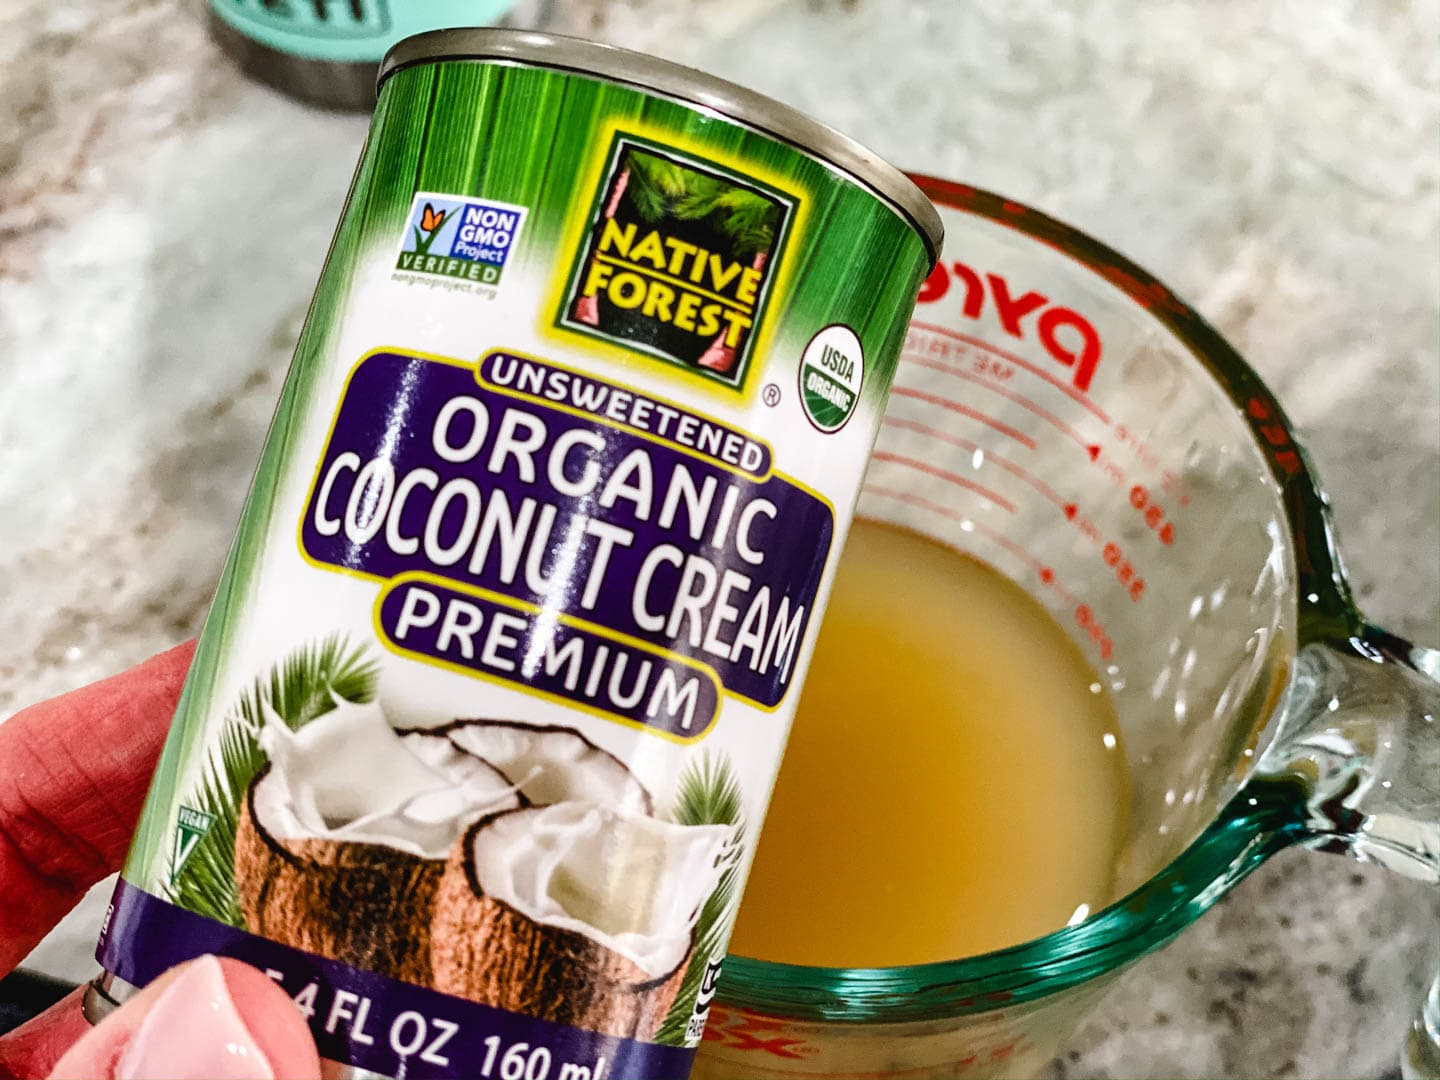 Can of coconut cream with a cup of chicken broth in the background.